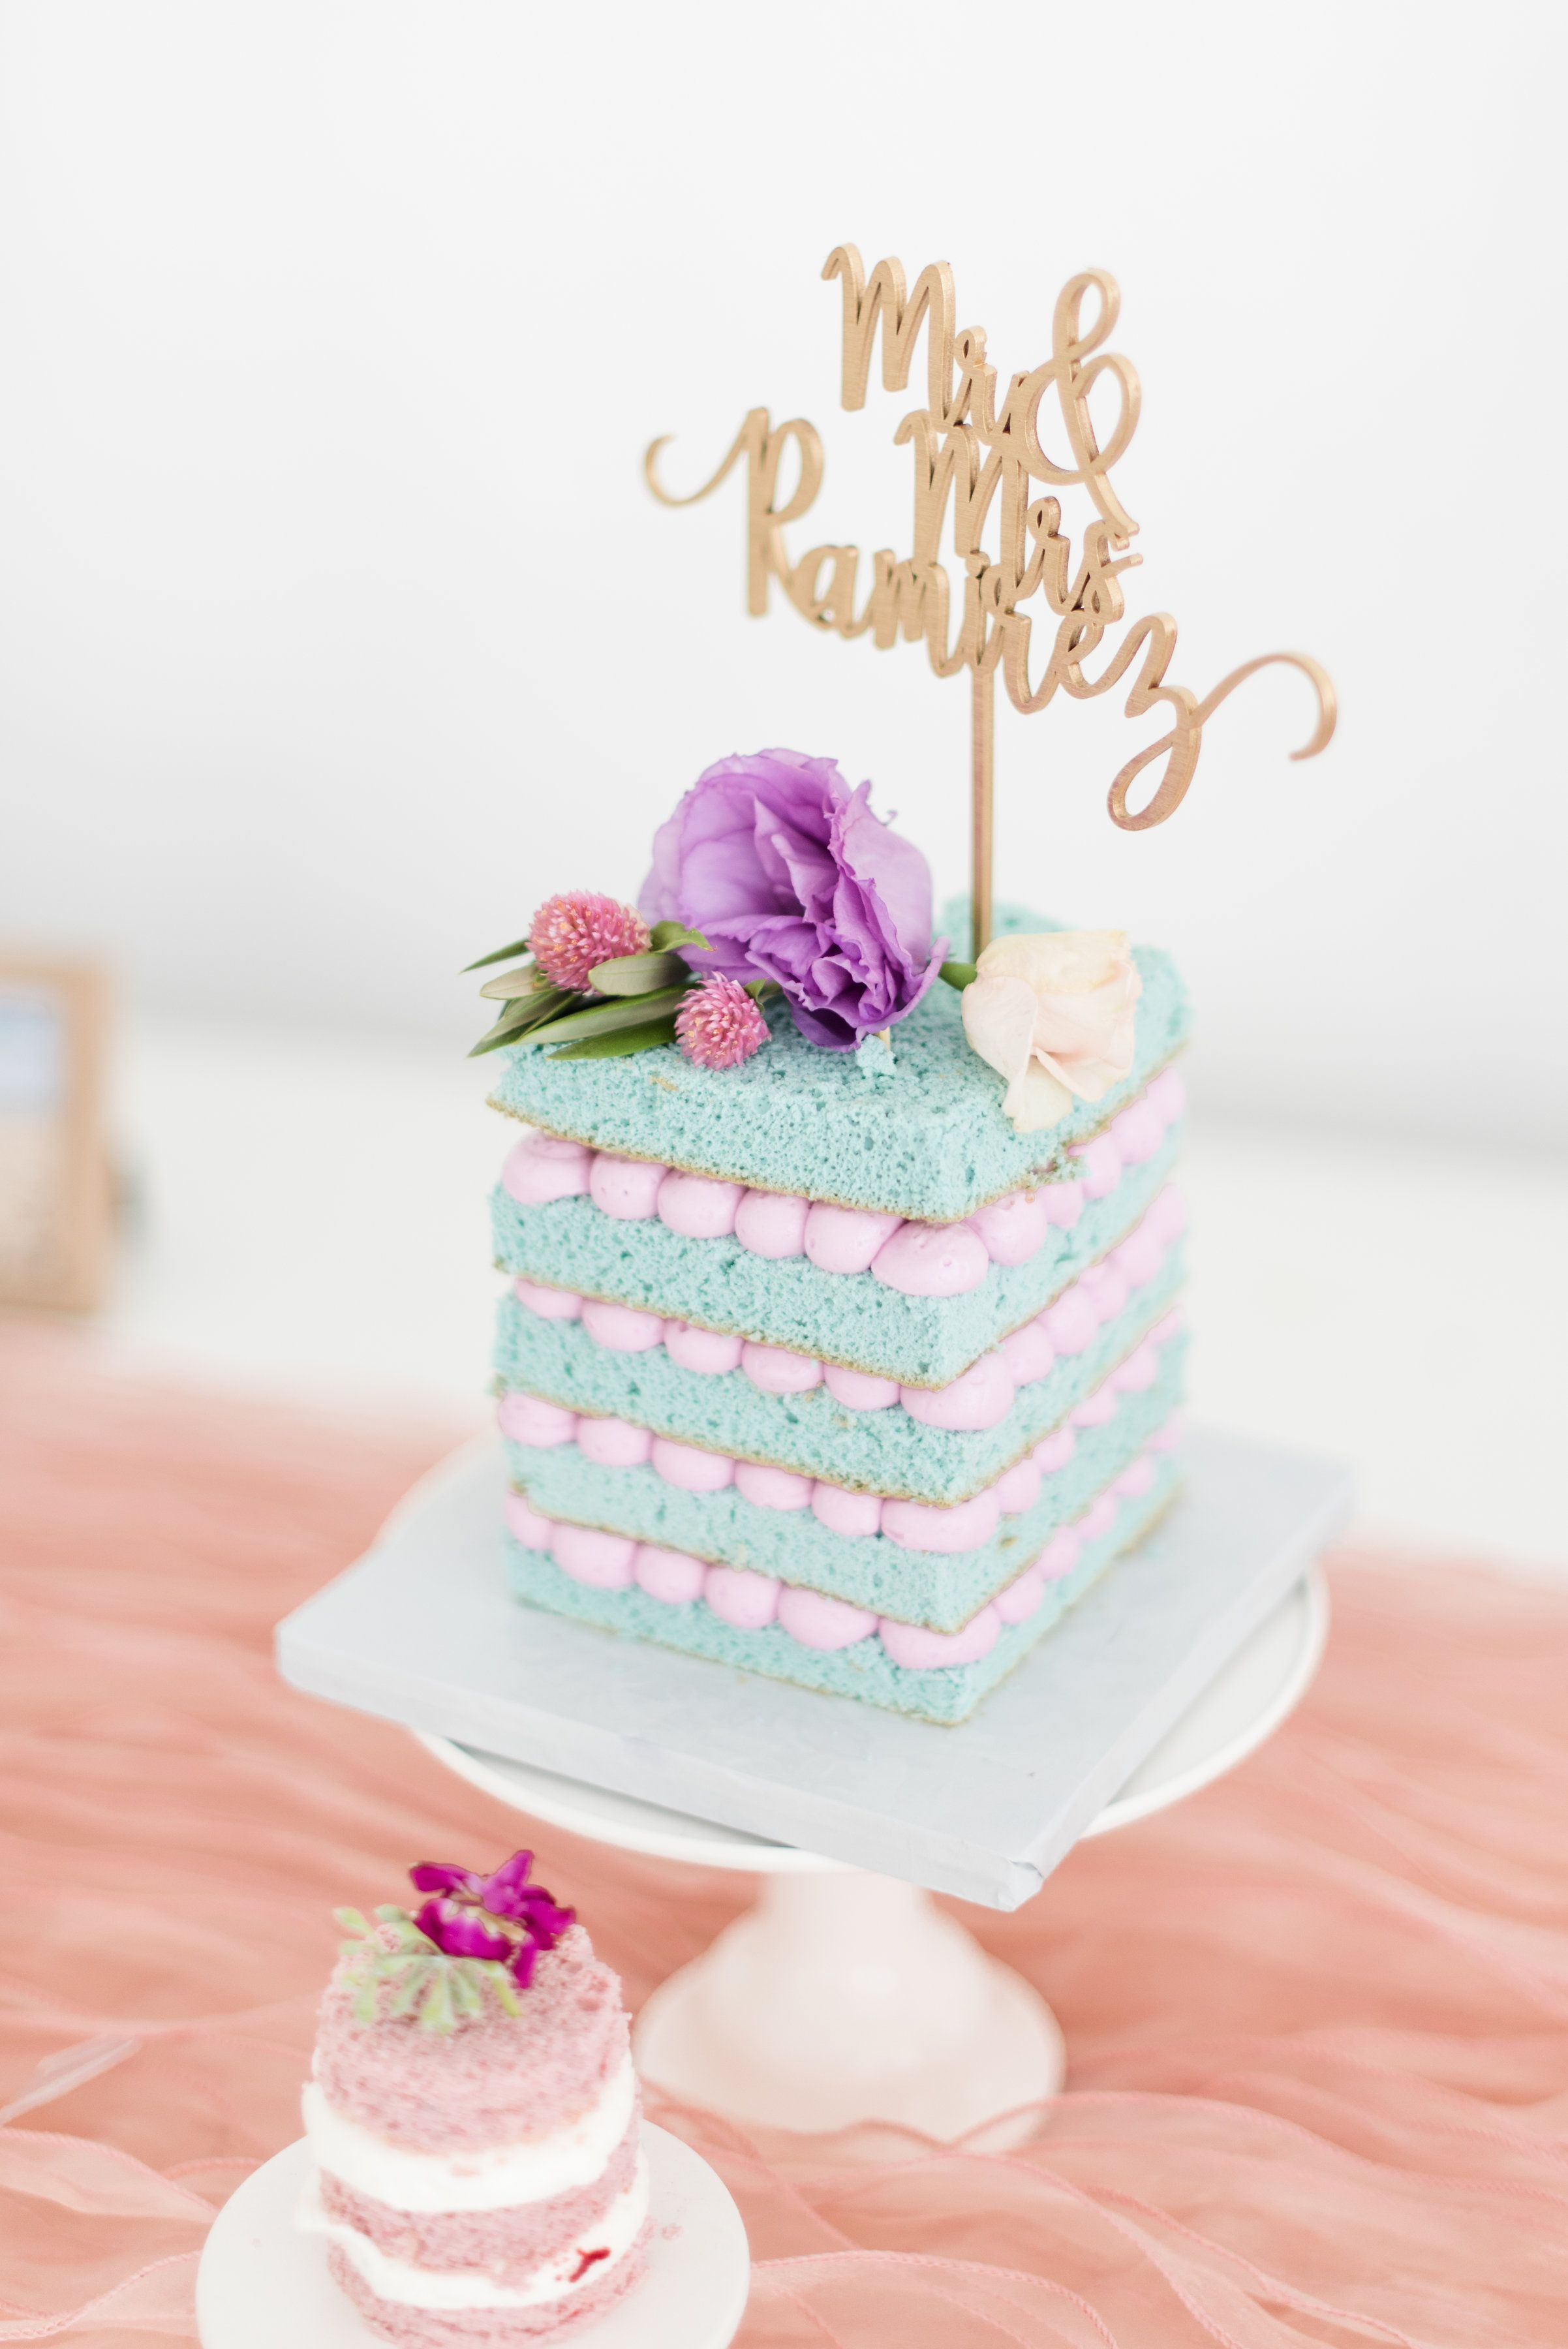 Cute Cake Idea For A Girls Birthday Party With Images Cake